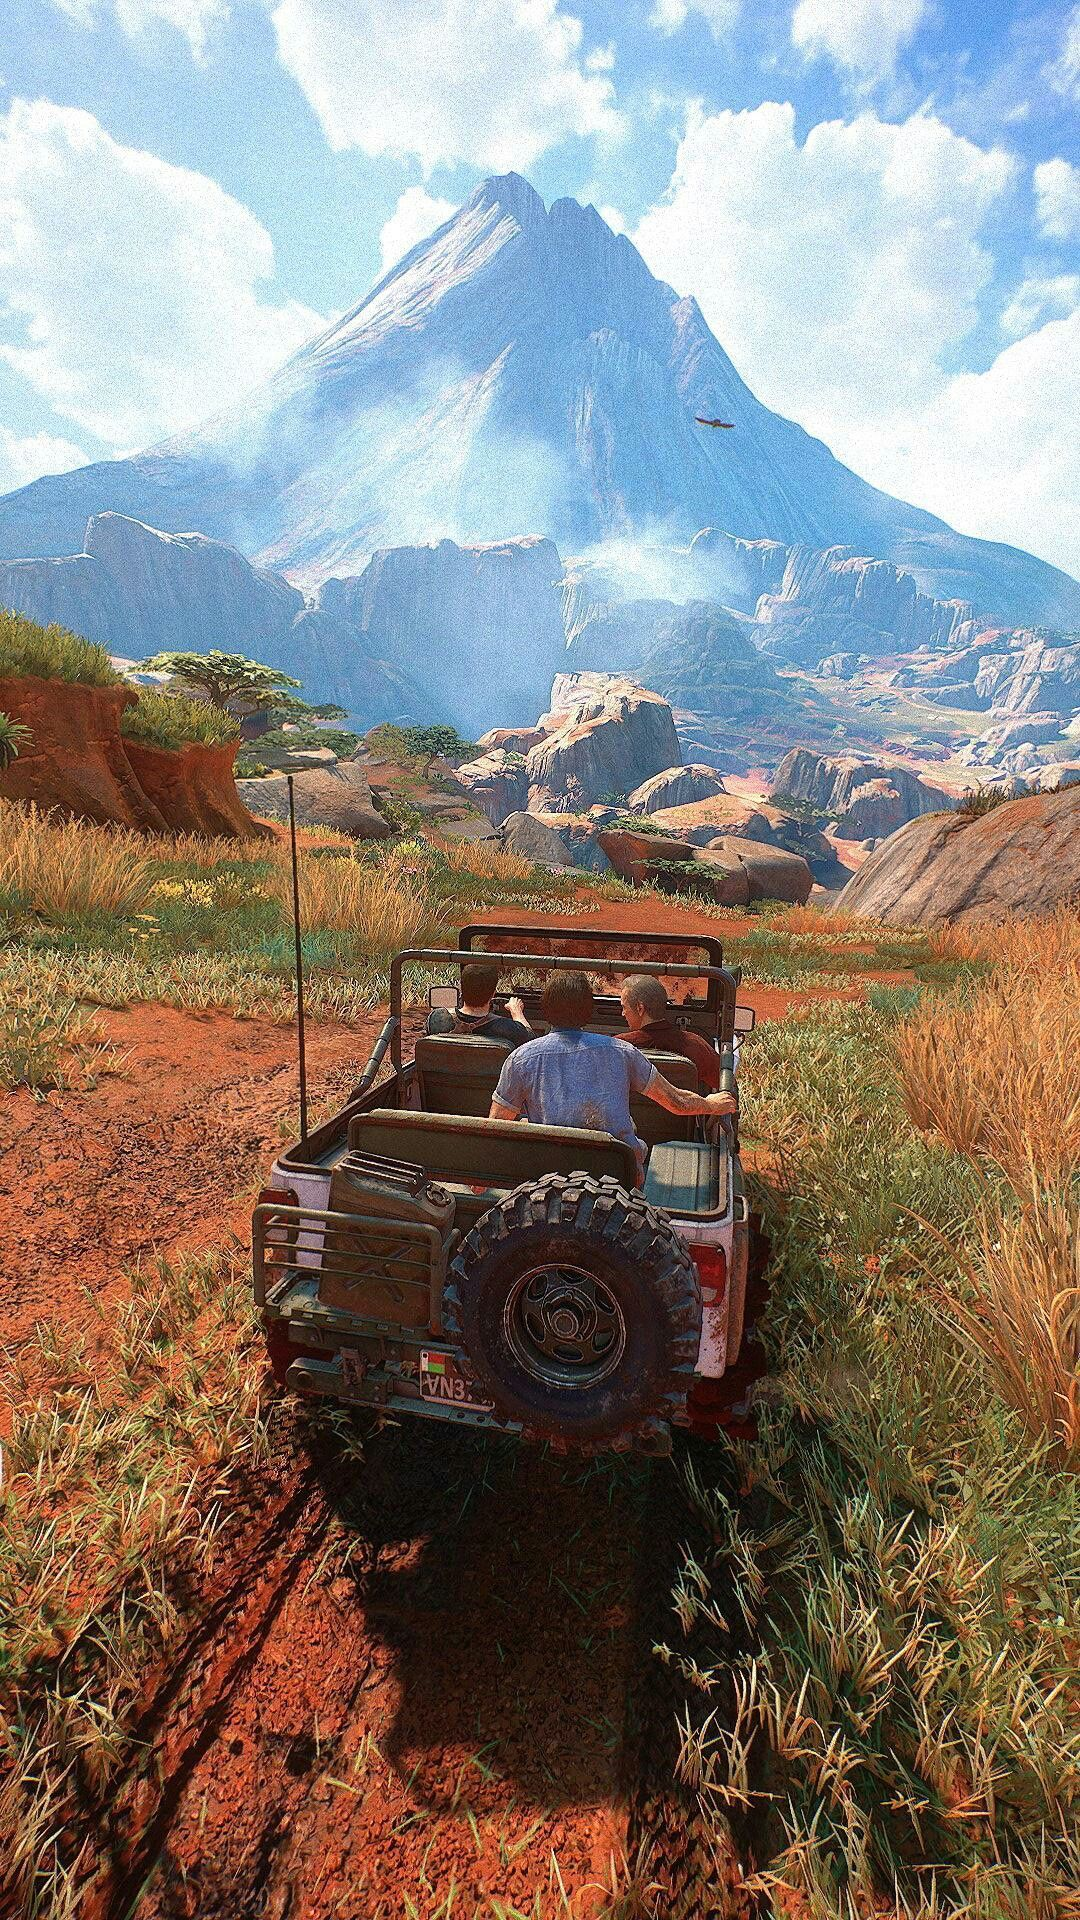 Download Cool Uncharted 4 Phone Wallpaper On High Quality Wallpaper On Hdwallpaper9 Com Iphone Android Wall In 2020 Uncharted Artwork Uncharted Uncharted Aesthetic